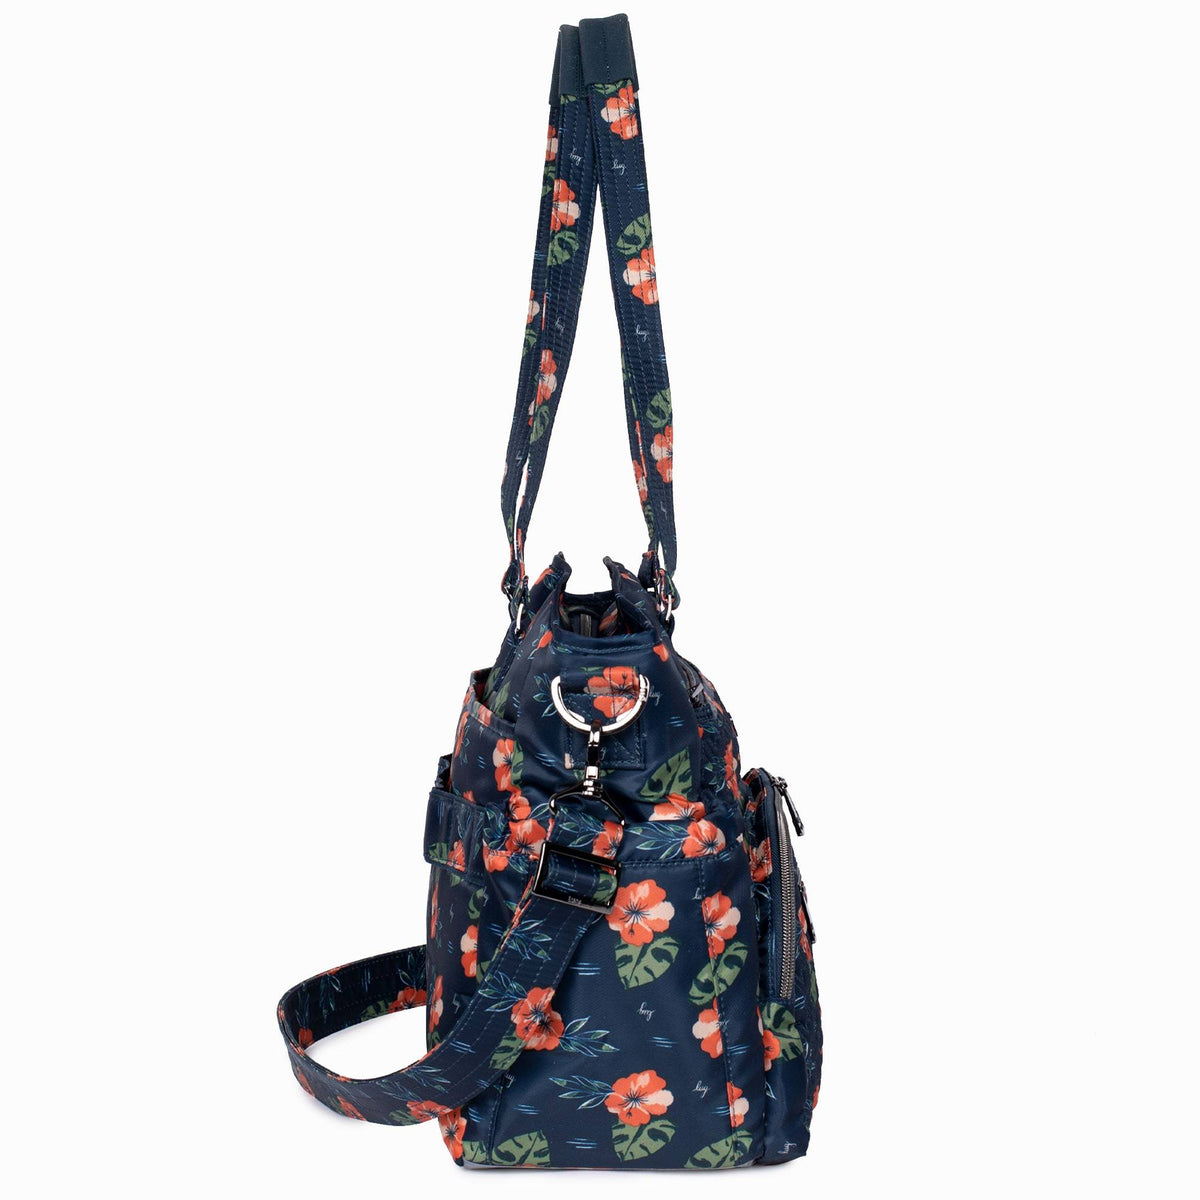 Windjammer SE Convertible Tote Bag